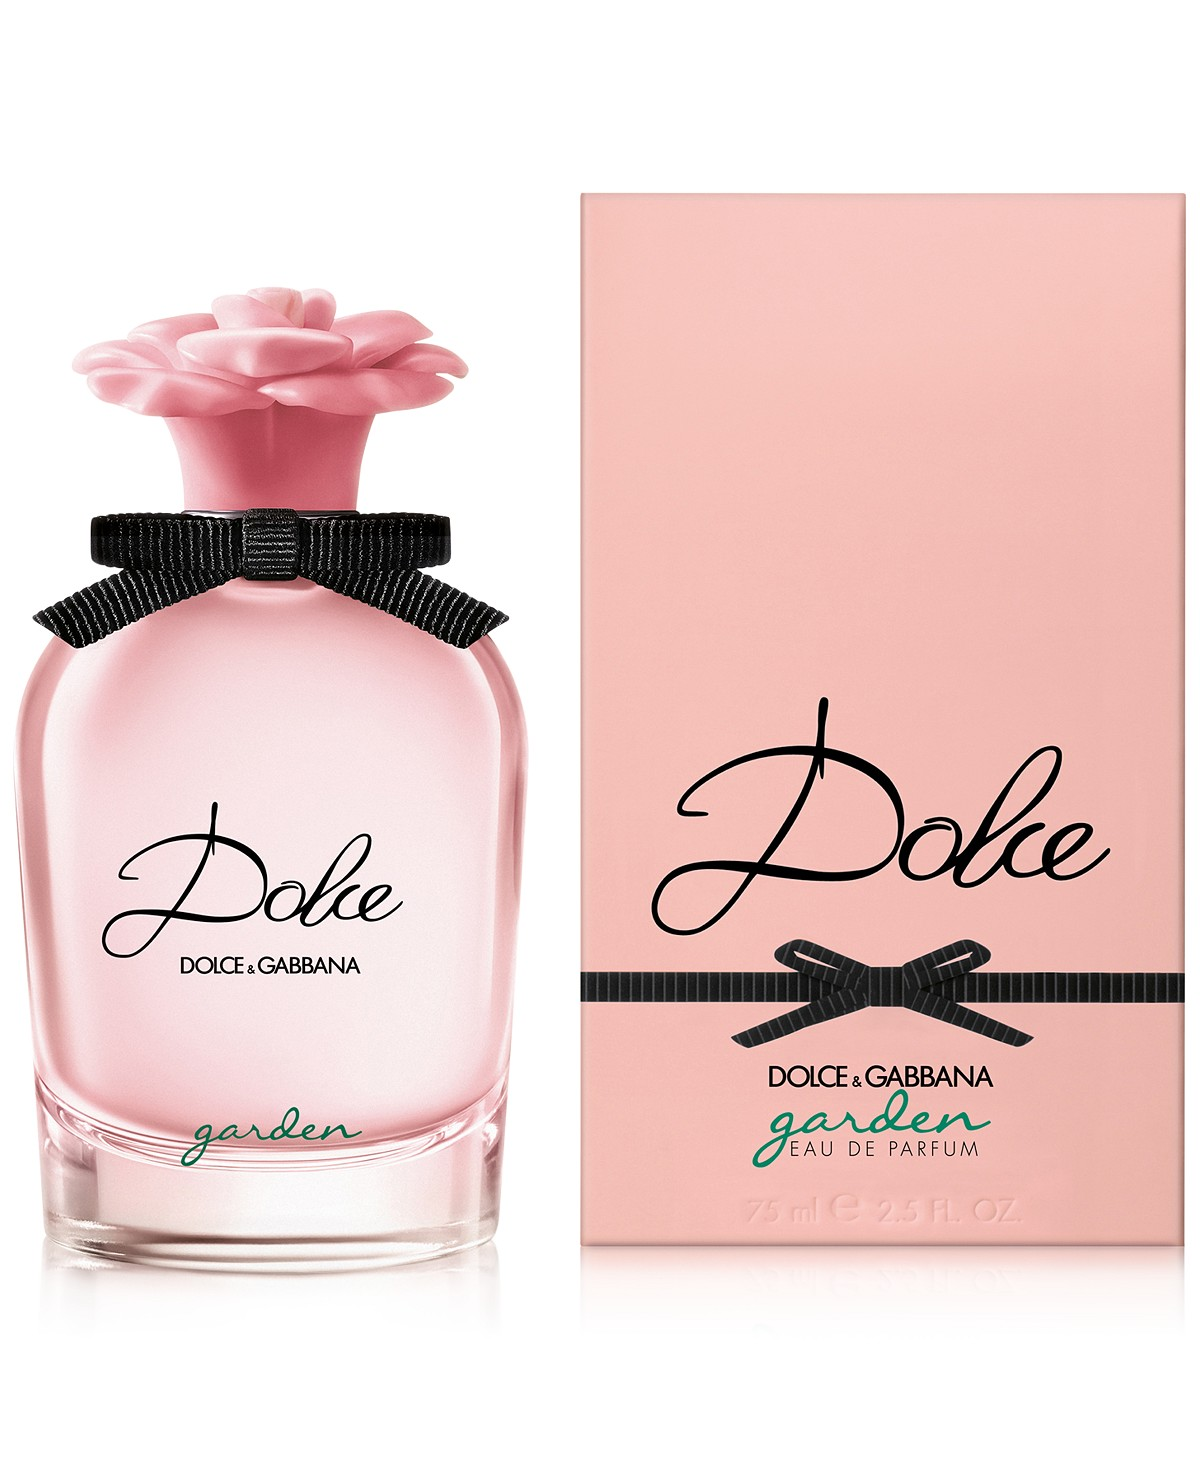 dolce garden dolce gabbana perfume a new fragrance for. Black Bedroom Furniture Sets. Home Design Ideas